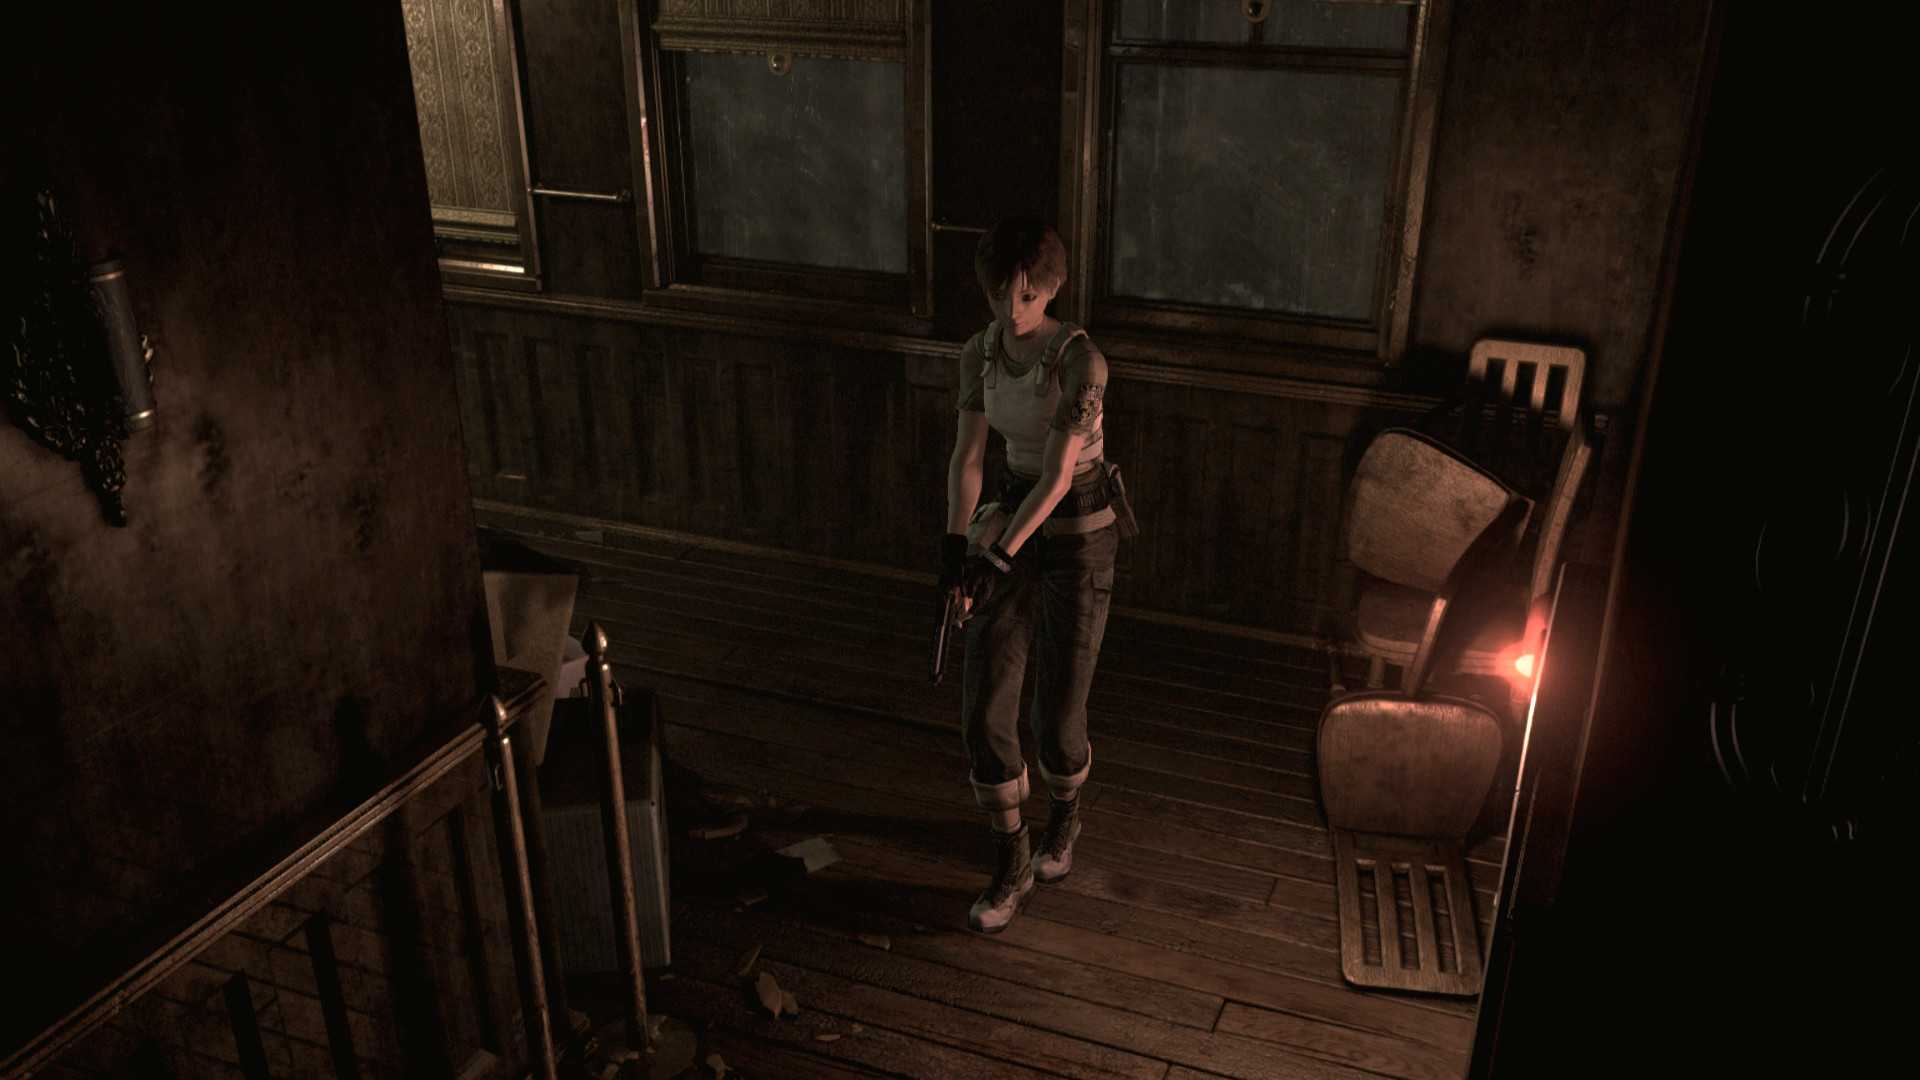 Buy Resident Evil 0 Biohazard 0 Hd Remaster Pc Game Steam Download